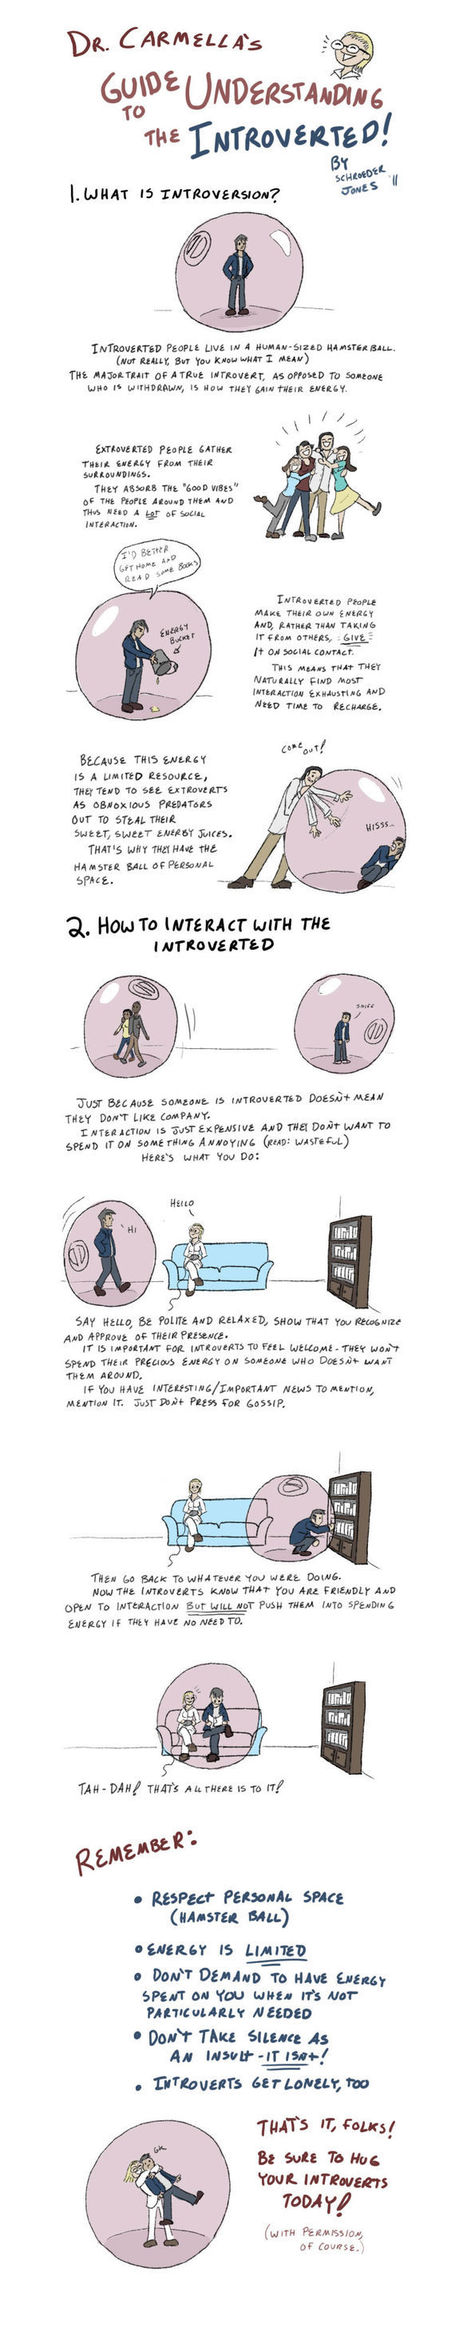 Your Guide To Interacting With An Introvert | Knowledge Broker | Scoop.it